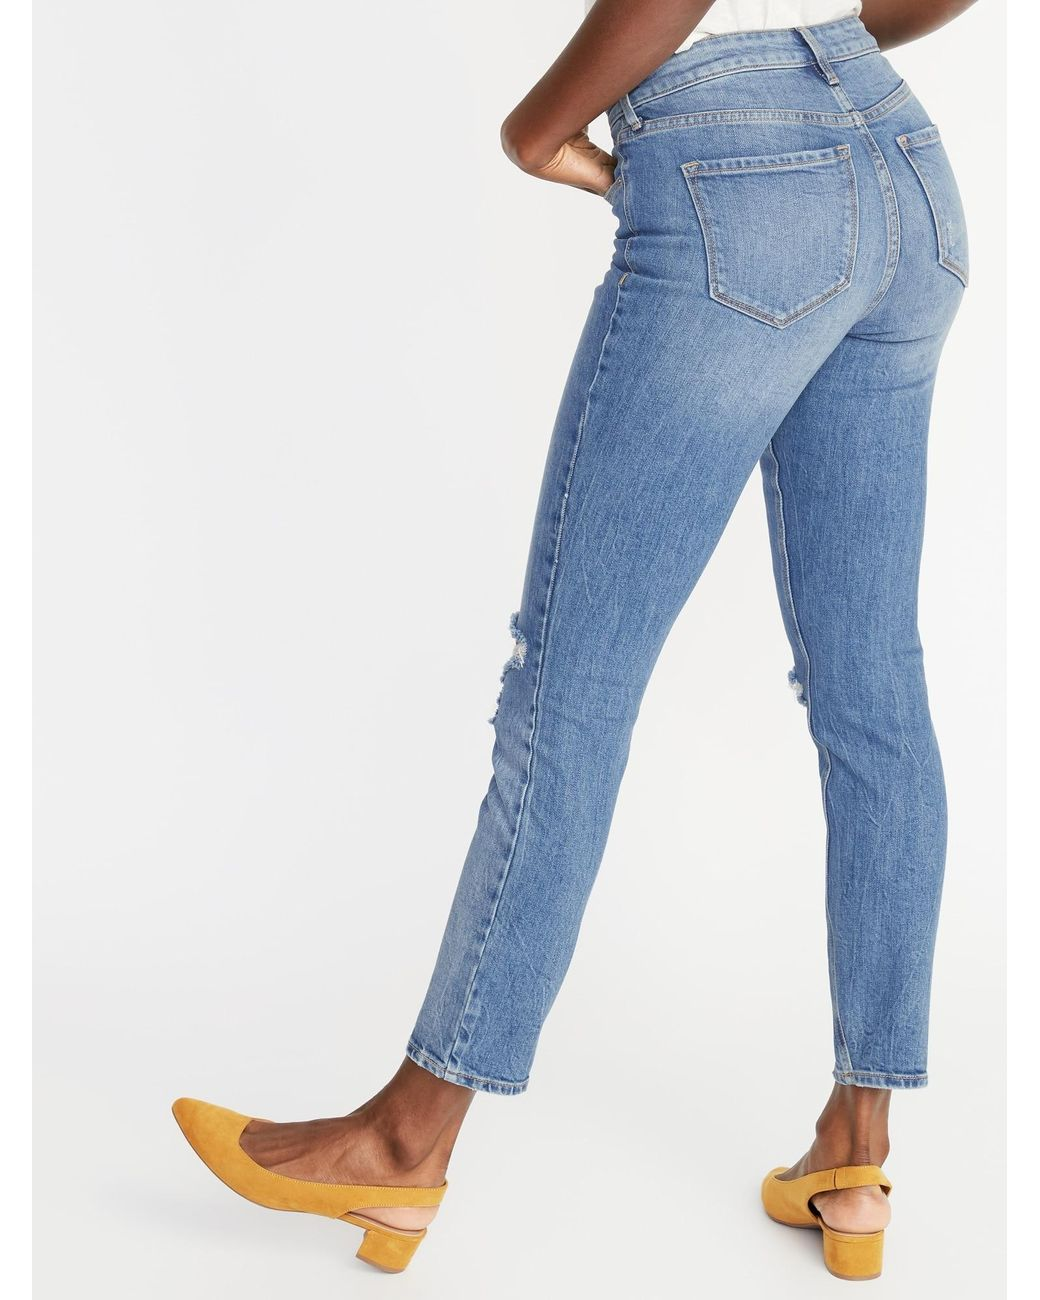 THIS CITY WOMENS SKINNY CAMDAN WASH RED JEANS WITH STUDDED BACK POCKET